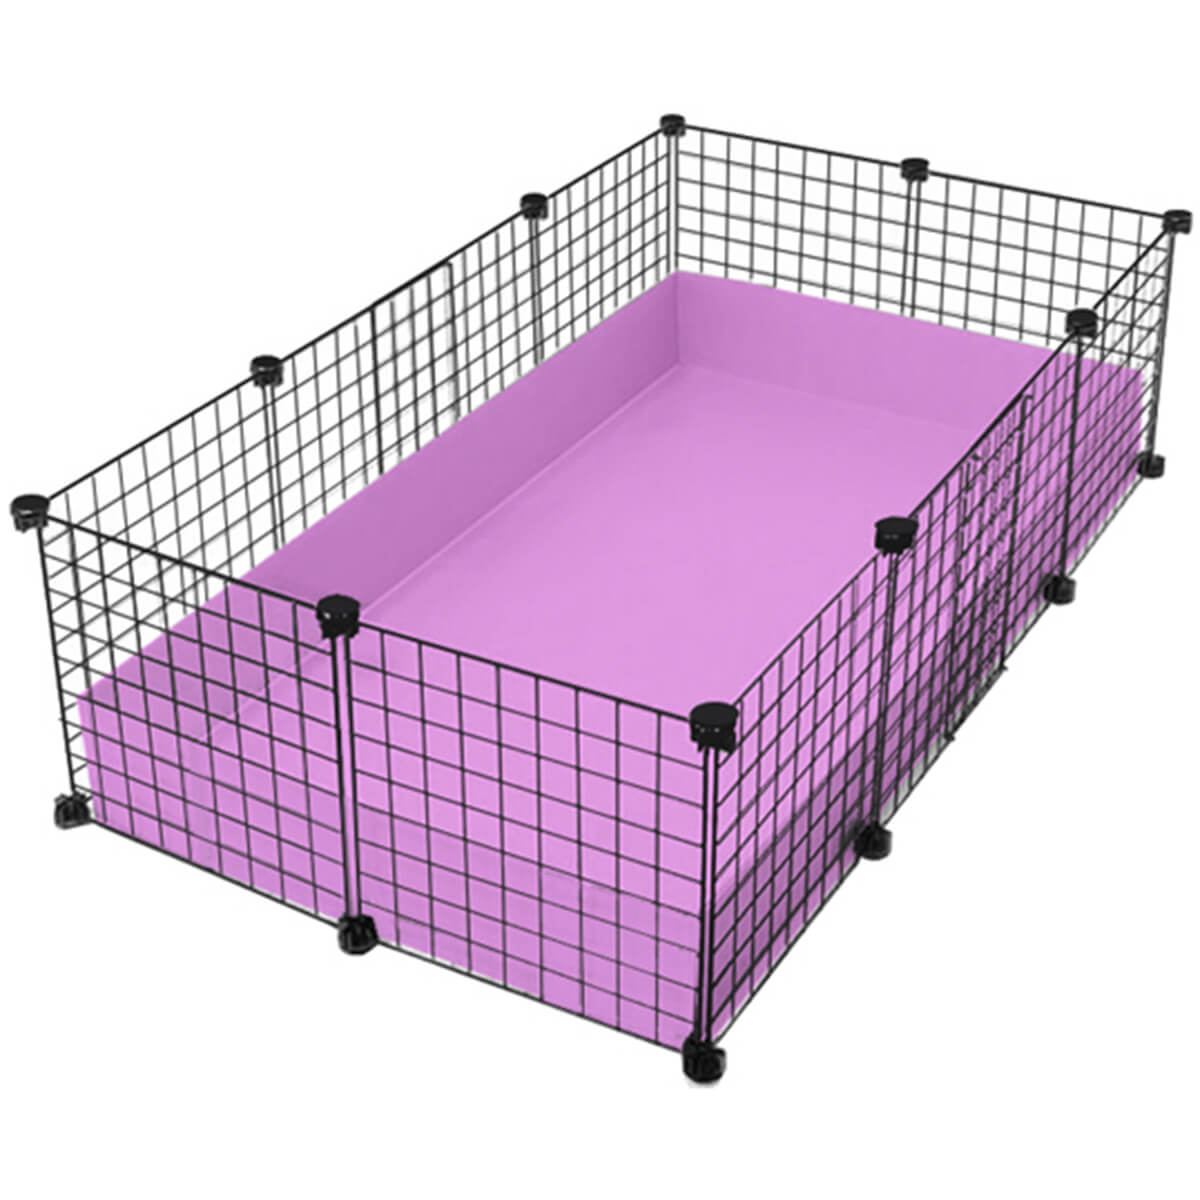 Medium 2x3 5 grids cage standard cages c c cages for for Guinea pig and cage for sale